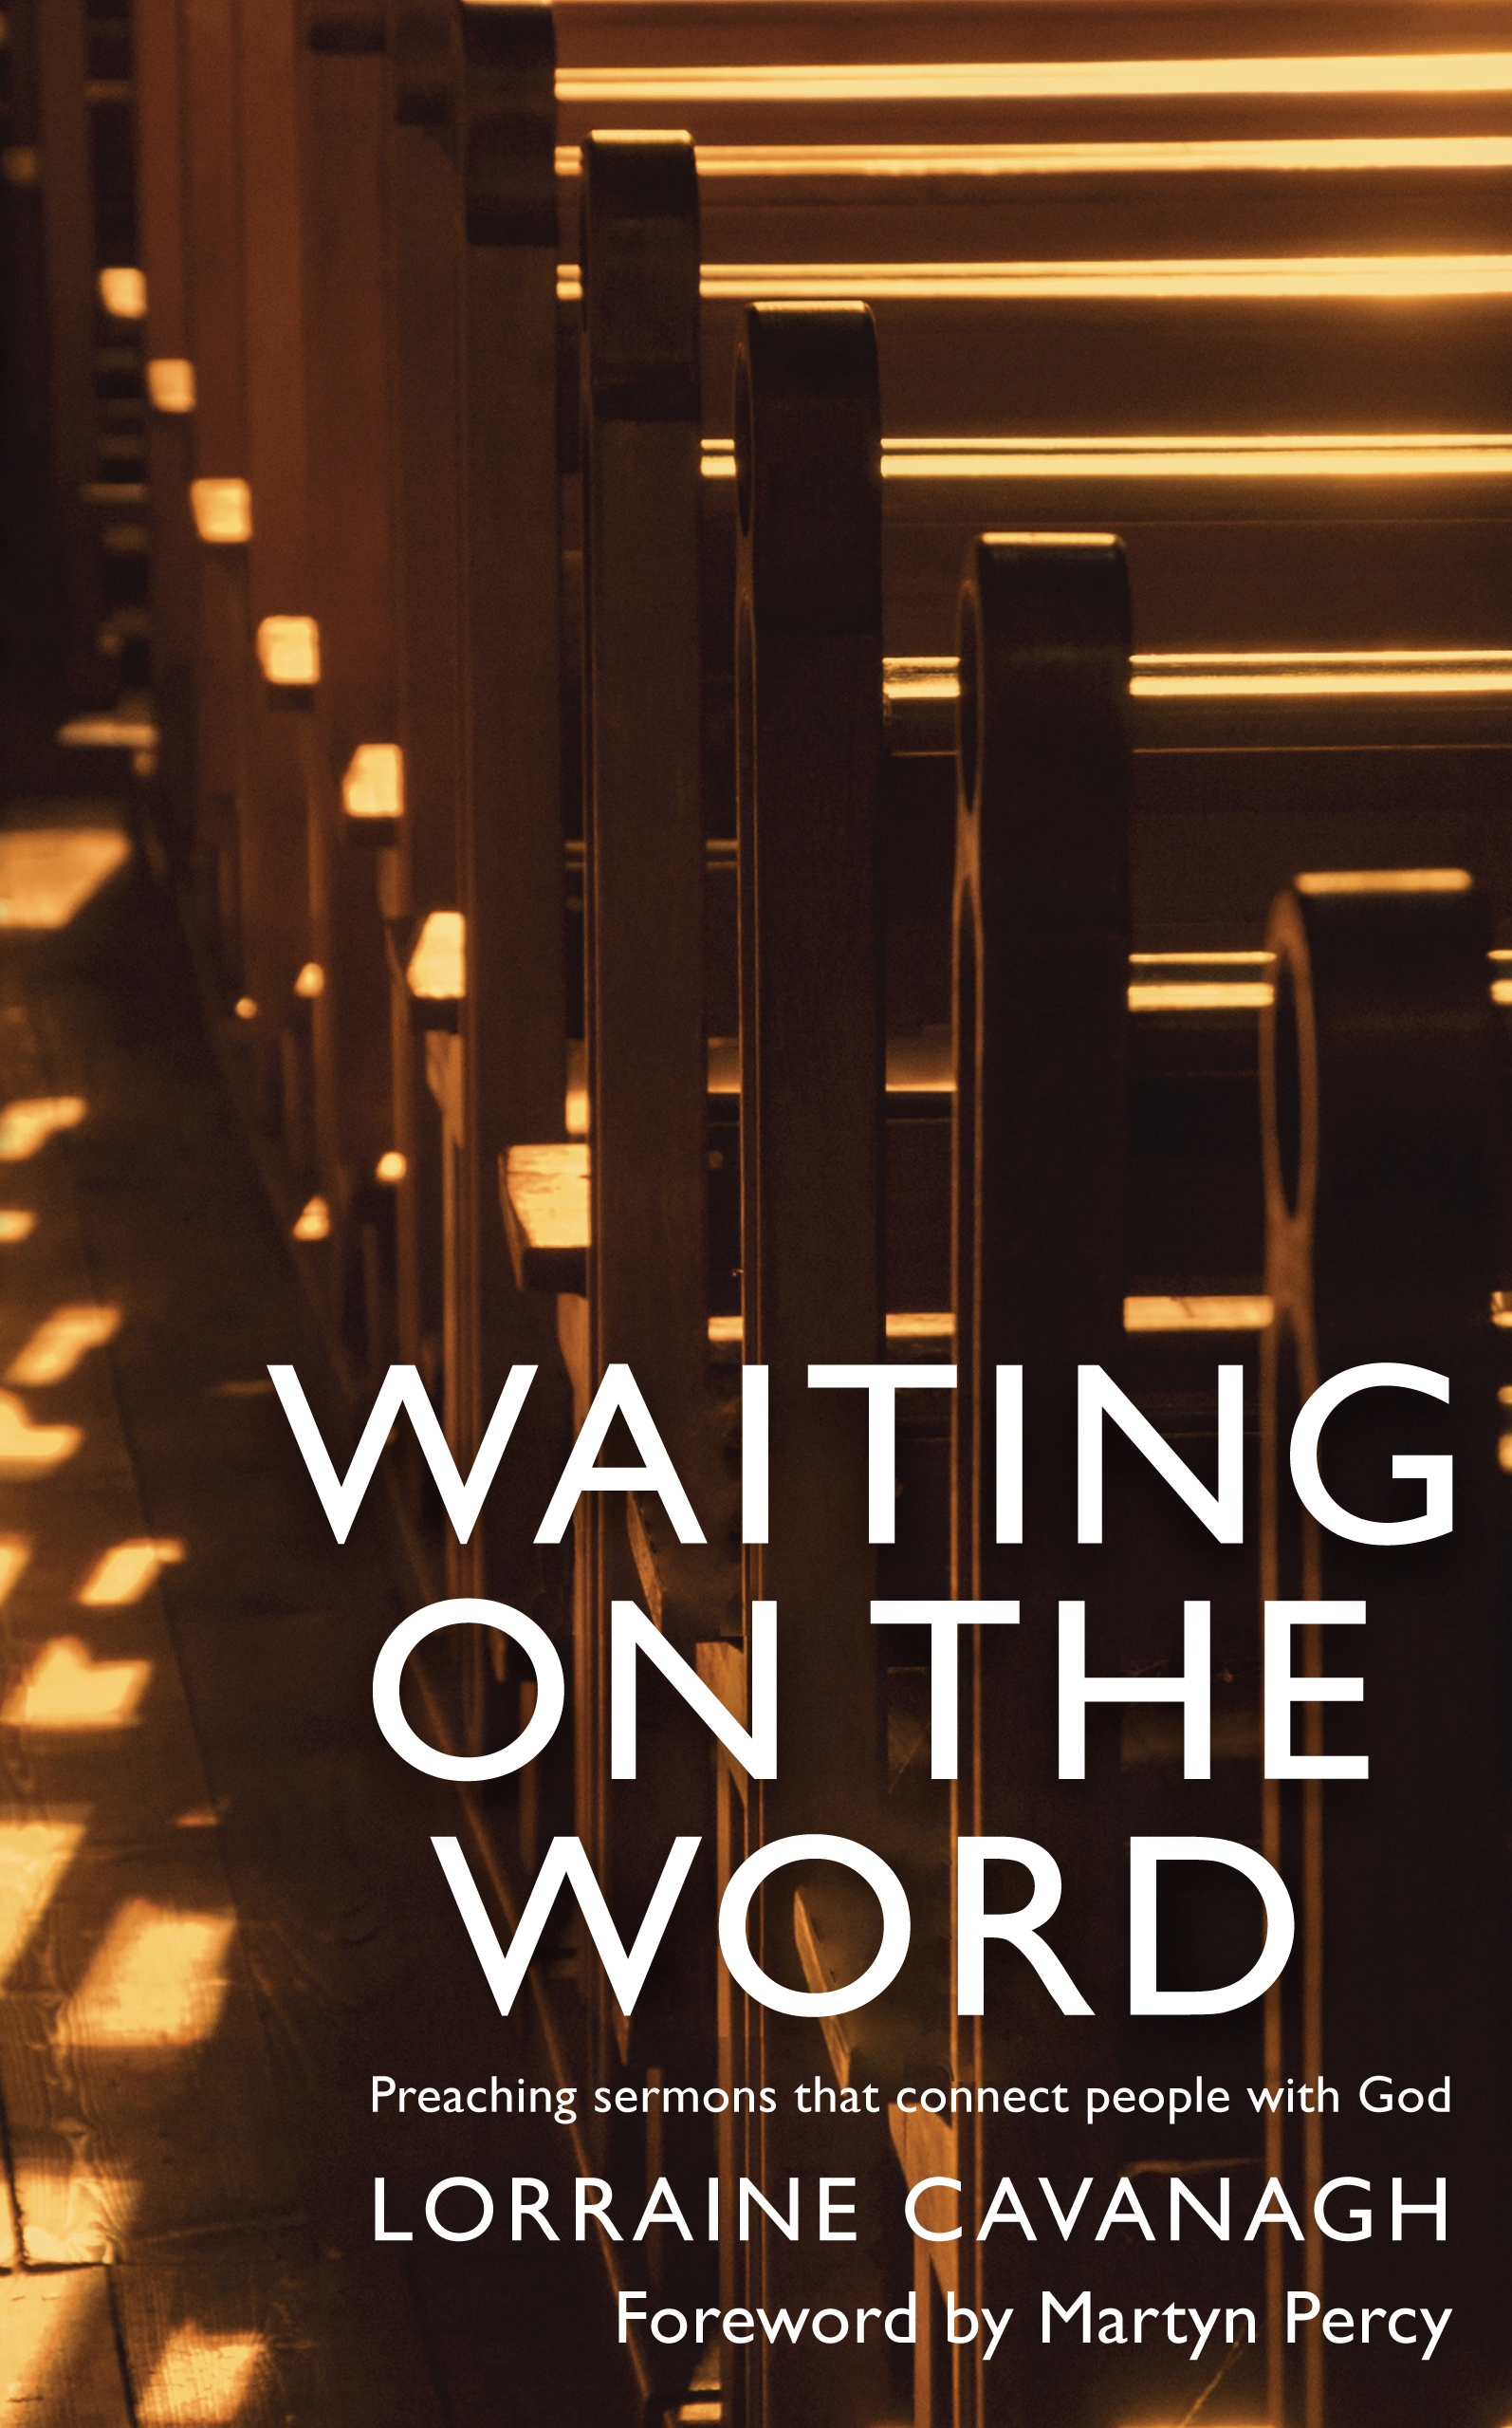 waiting on the word book cover.jpg